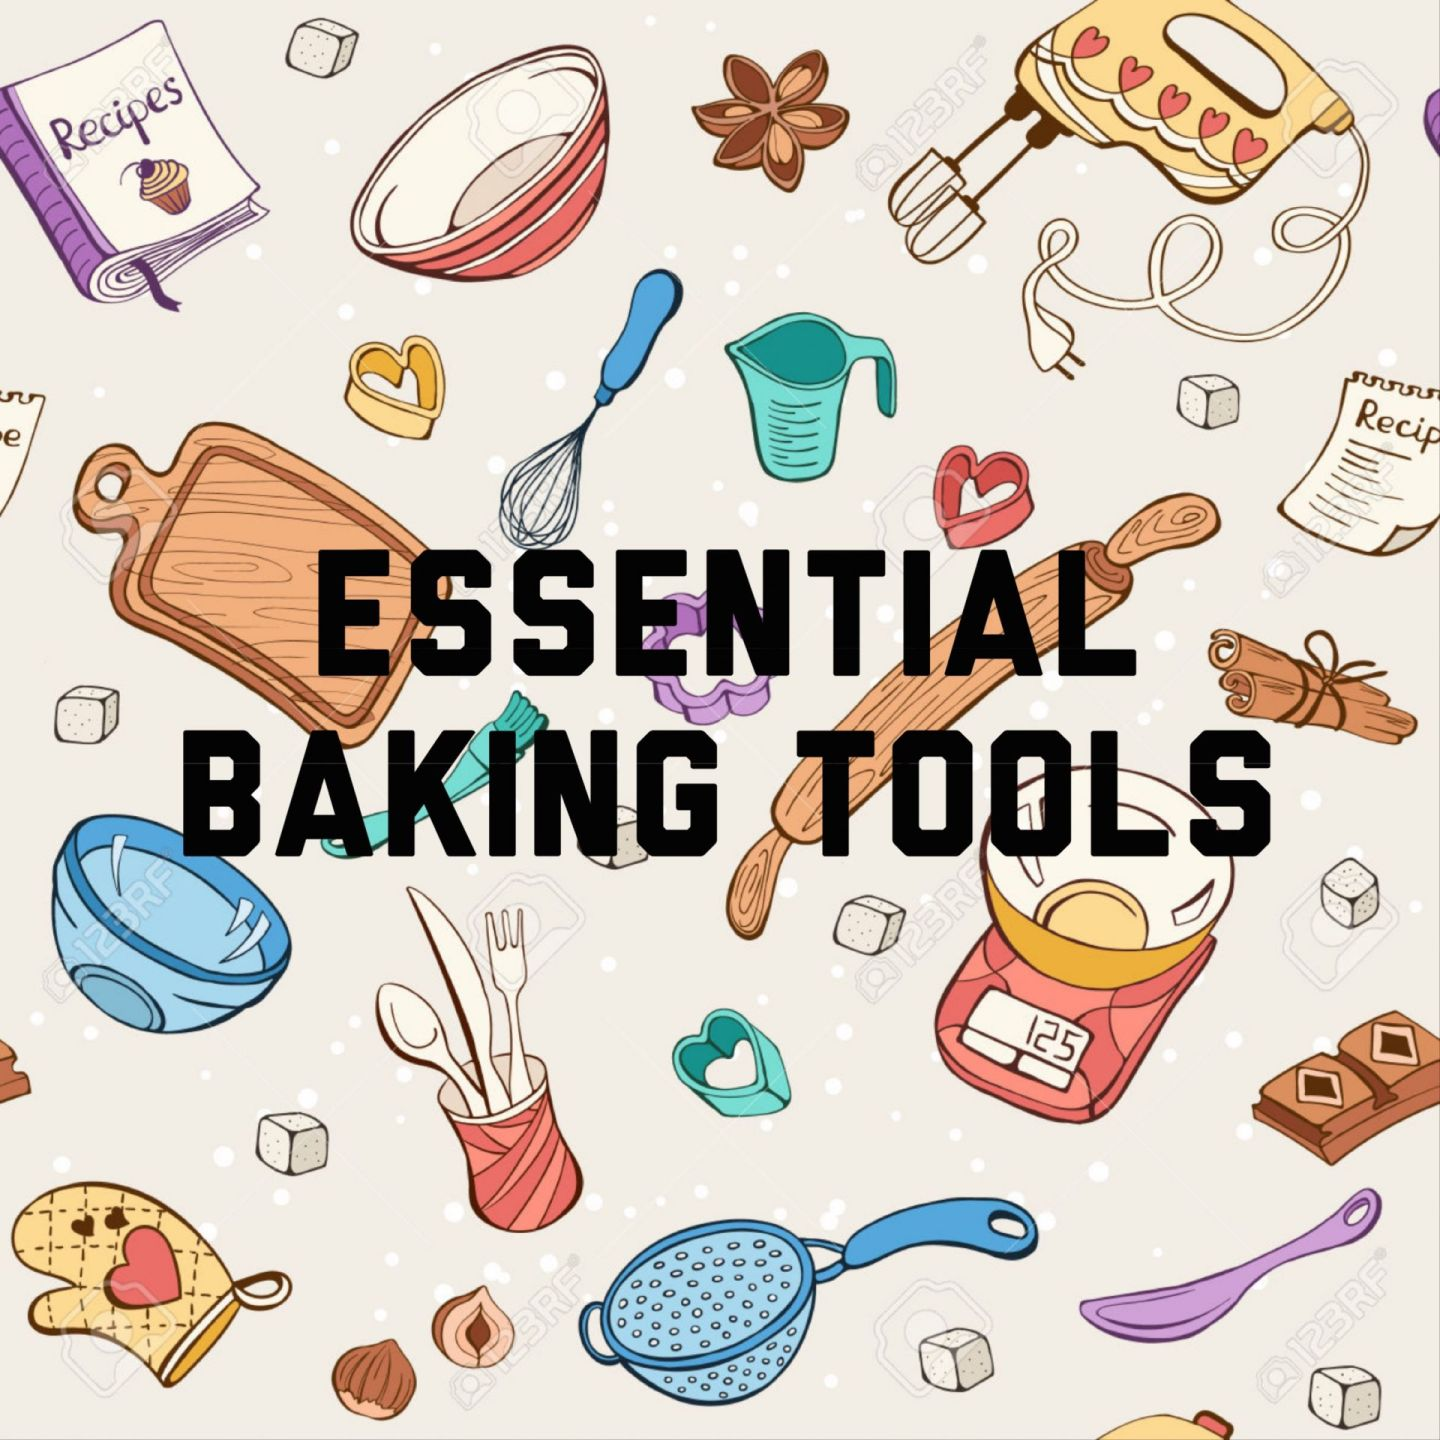 Essential Baking Tools | Baking For Beginners!